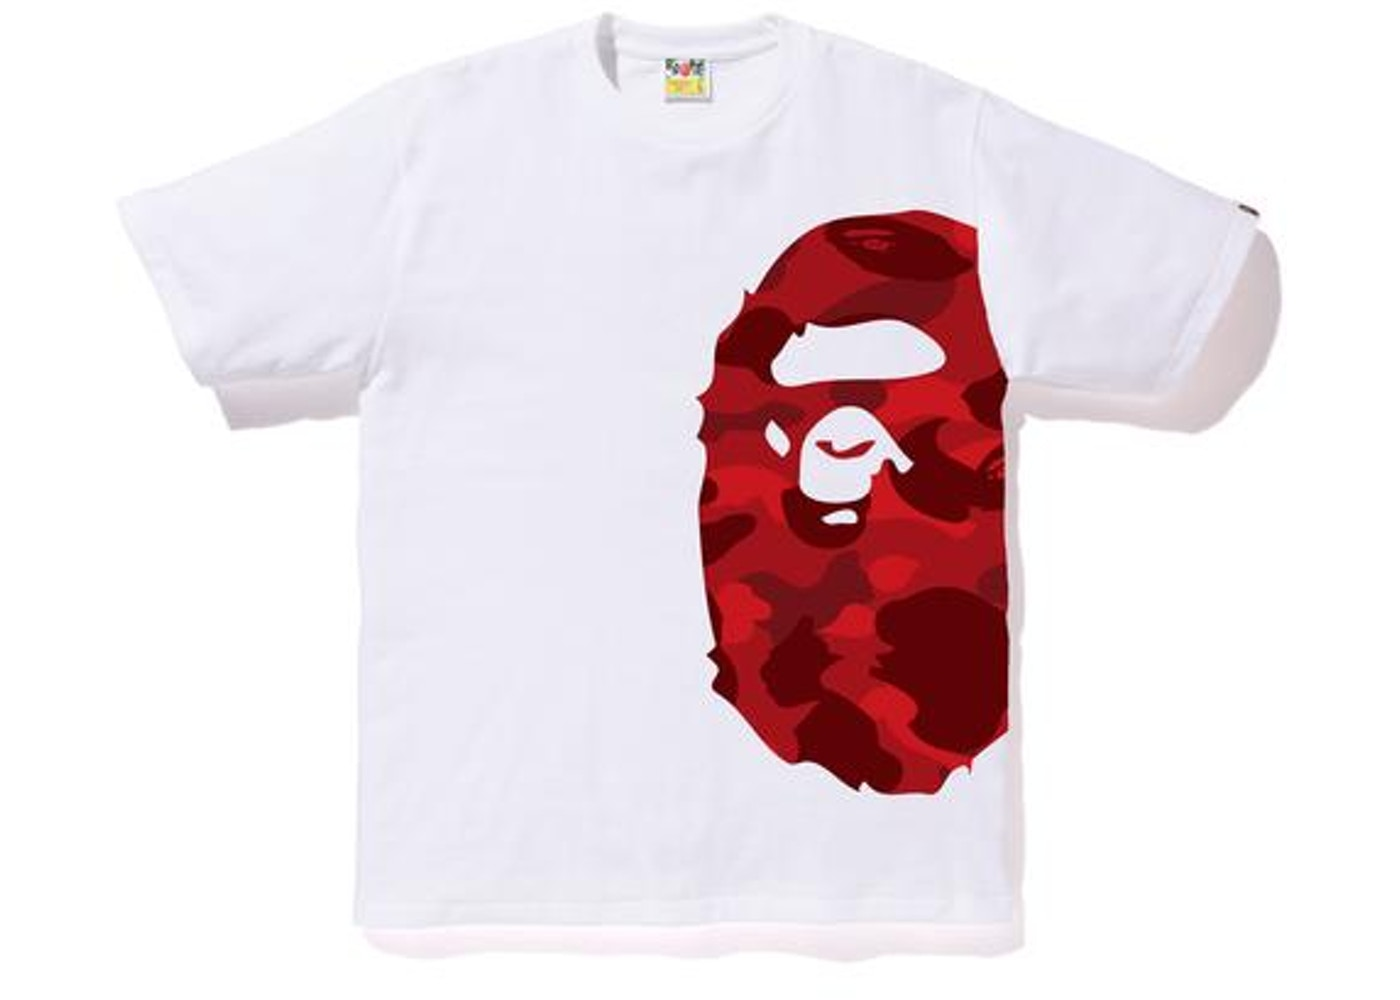 acdb321d BAPE Color Camo Side Big Ape Head Tee White/Red. Color Camo Side Big Ape  Head